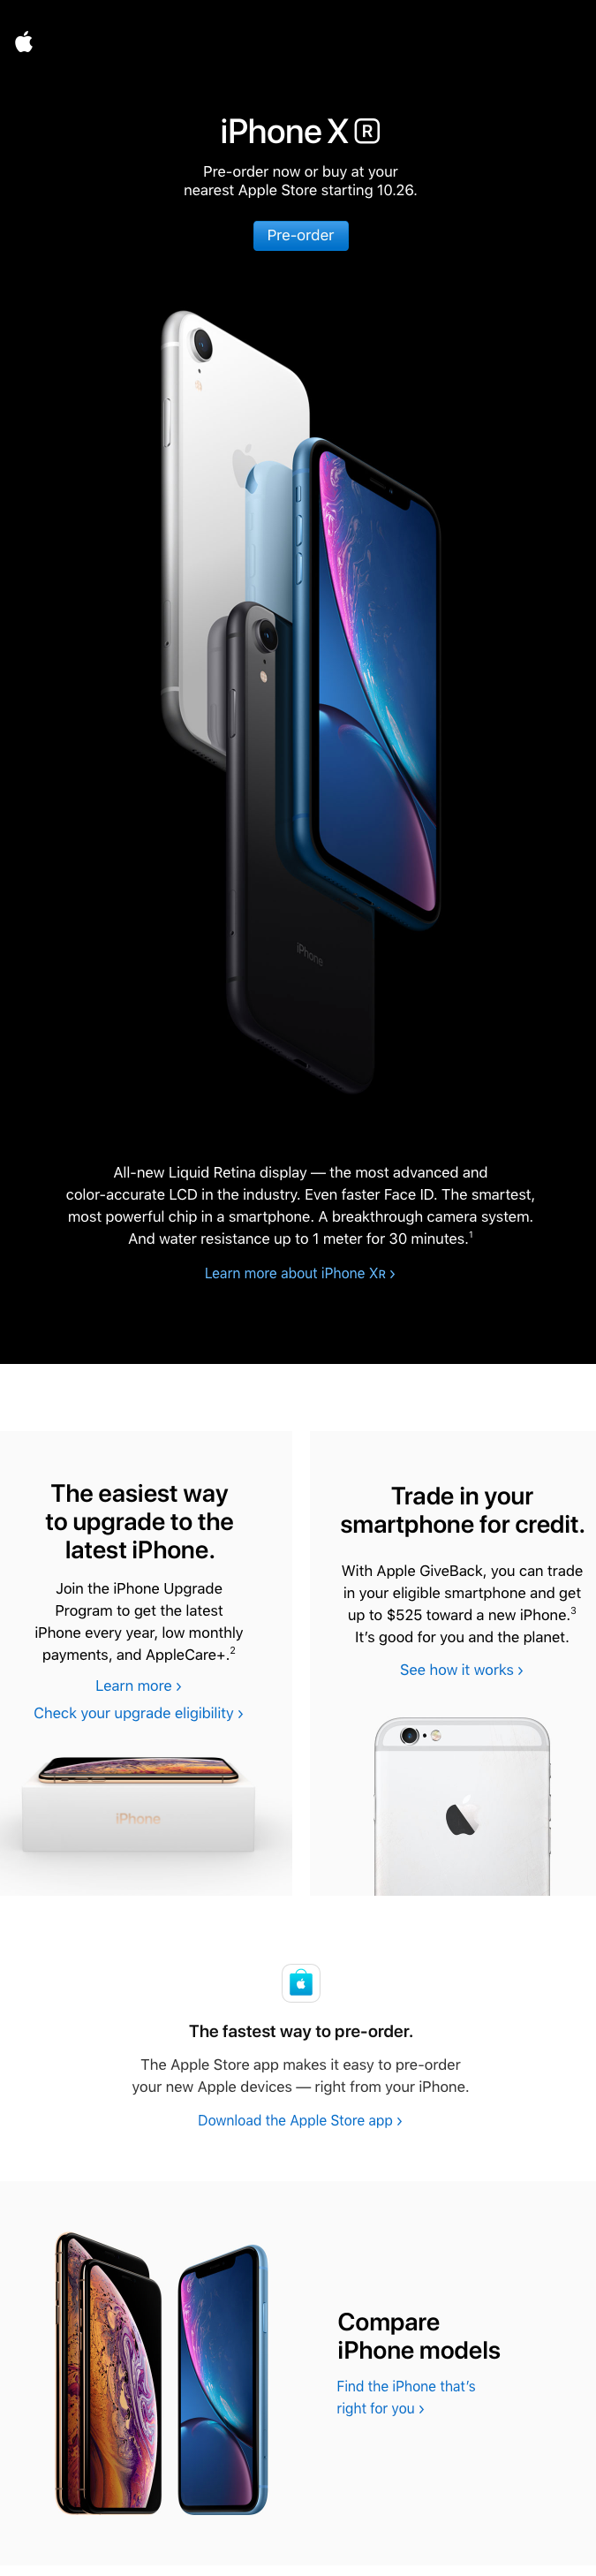 Promo email iPhone